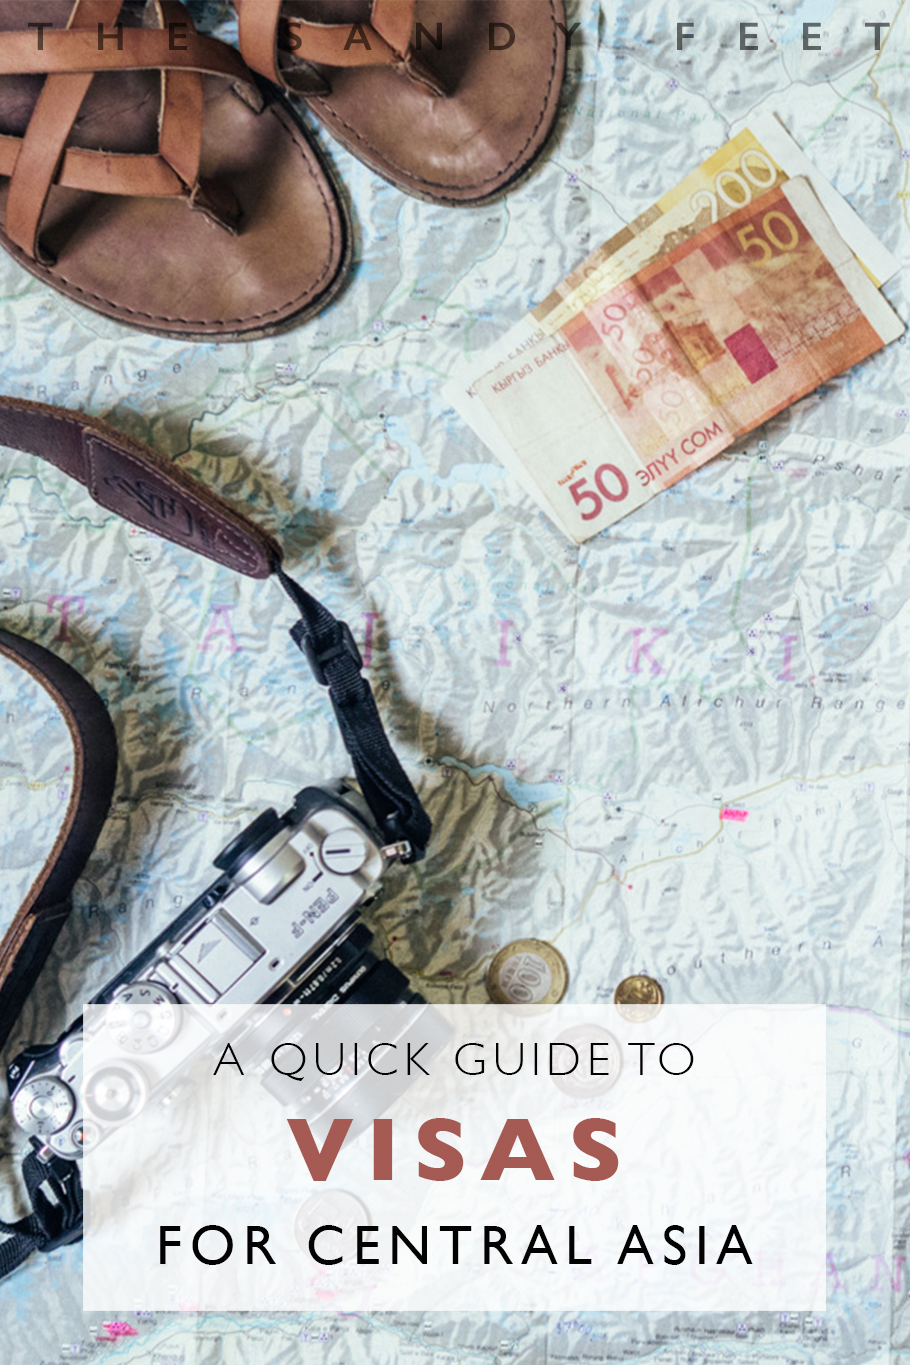 A Mini Guide To Visas For Central Asia | The Visas You'll Need And How To Apply For Travel To Kazakhstan, Kyrgyzstan, Tajikistan, Uzbekistan and Turkmenistan